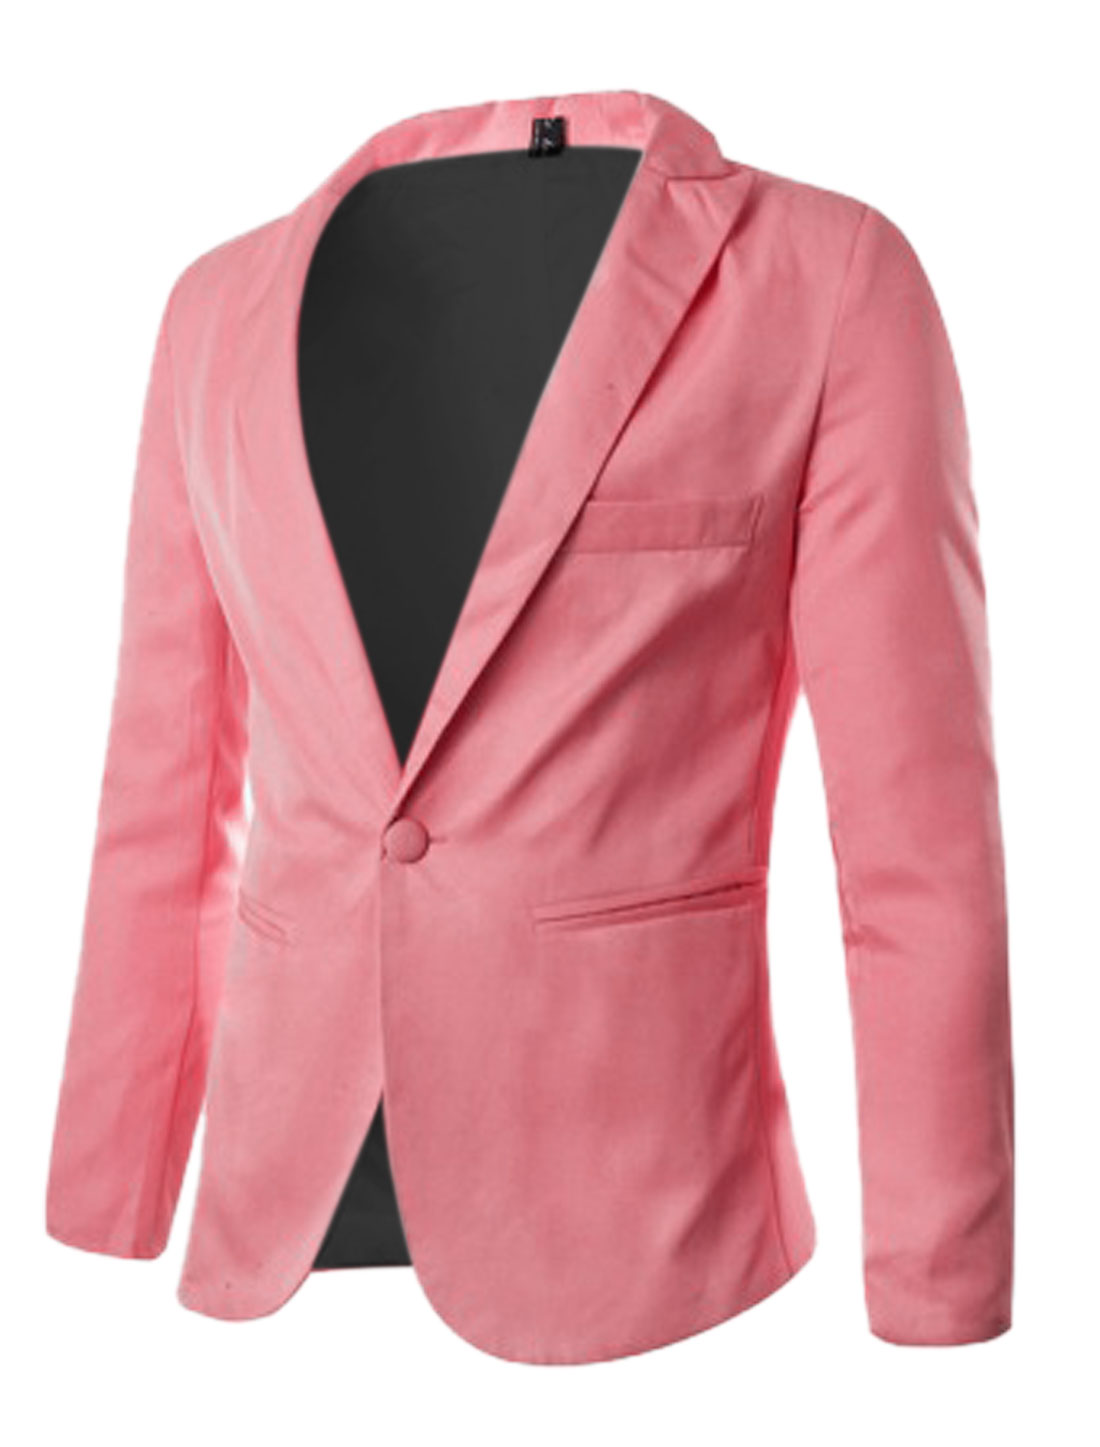 Button Up Front Long Sleeves Pink Blazer Jacket for Man M